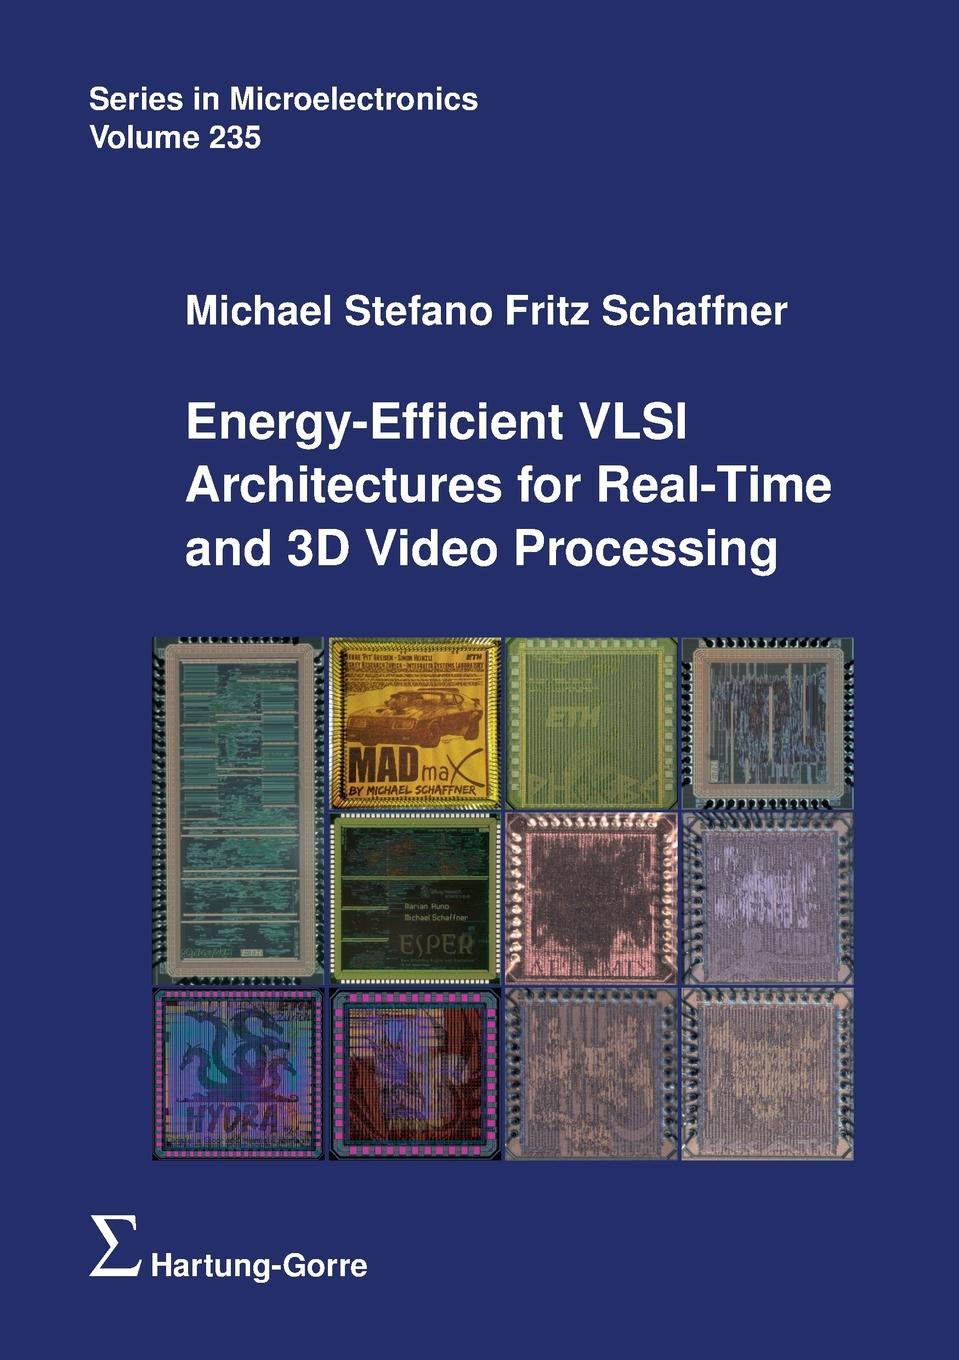 Michael Stefano Fritz Schaffner Energy-Efficient VLSI Architectures for Real-Time and 3D Video Processing